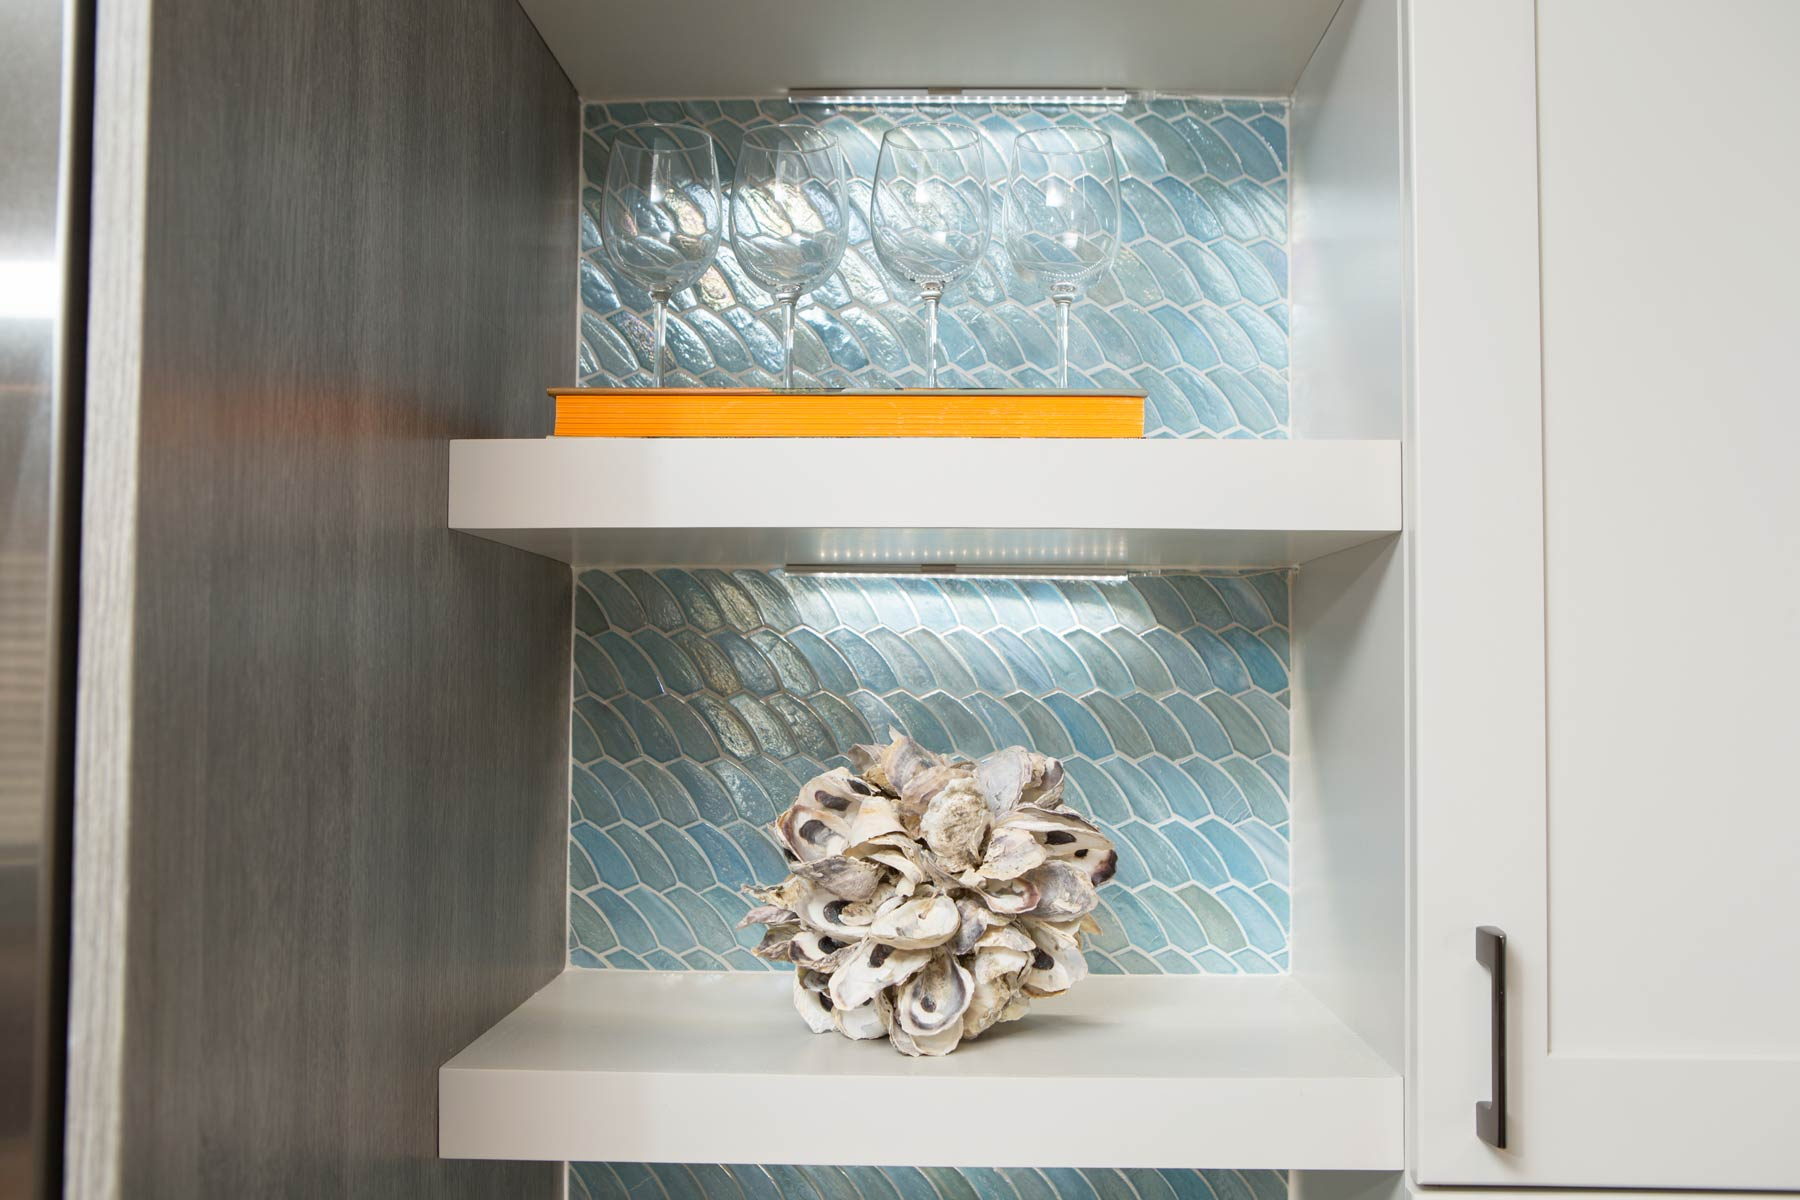 Decorative shelving in kitchen remodel project